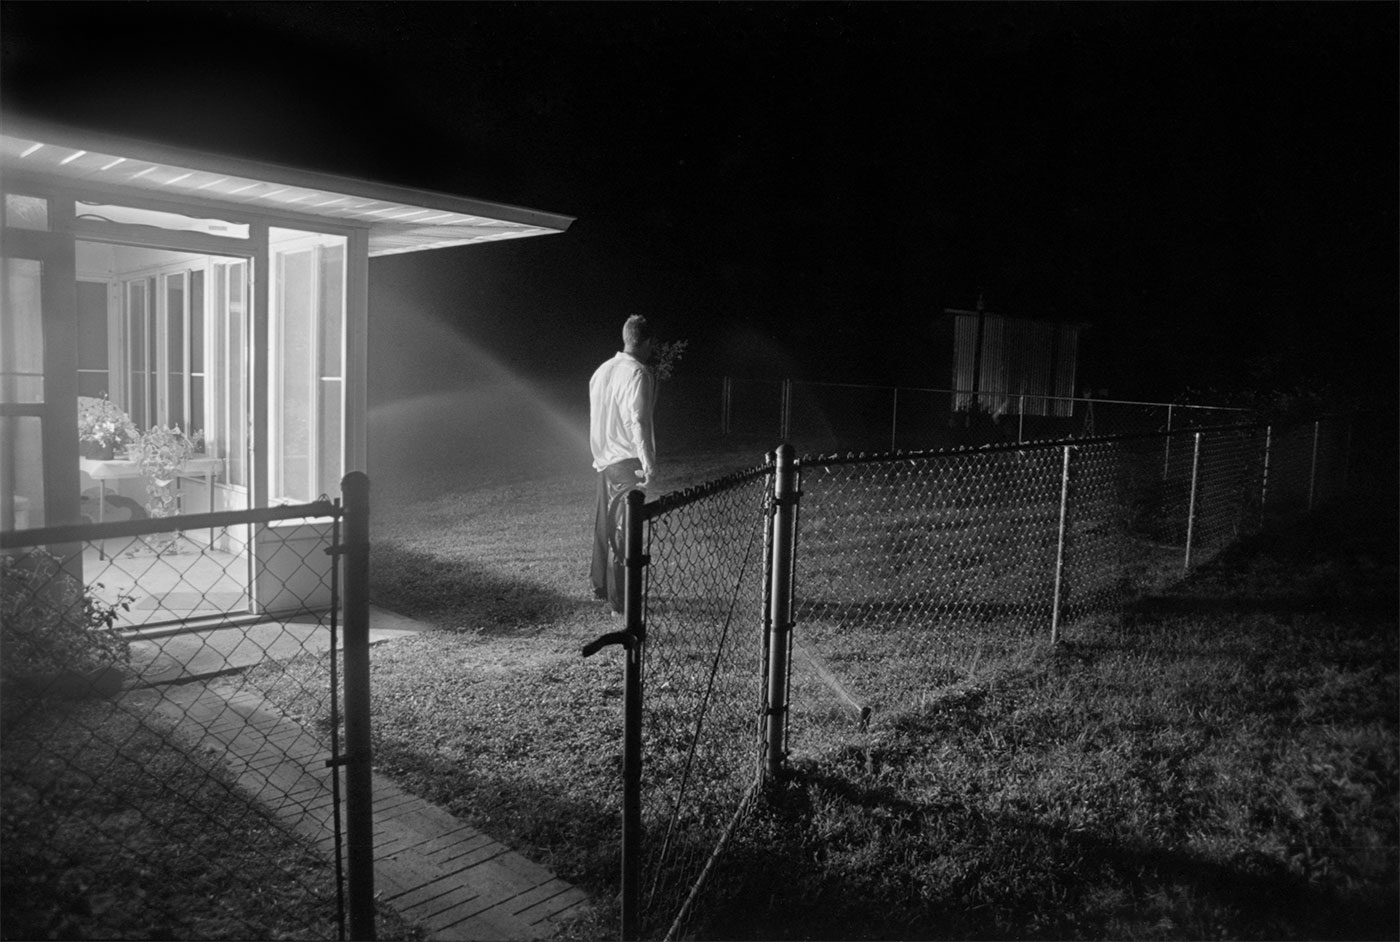 Man outside at night